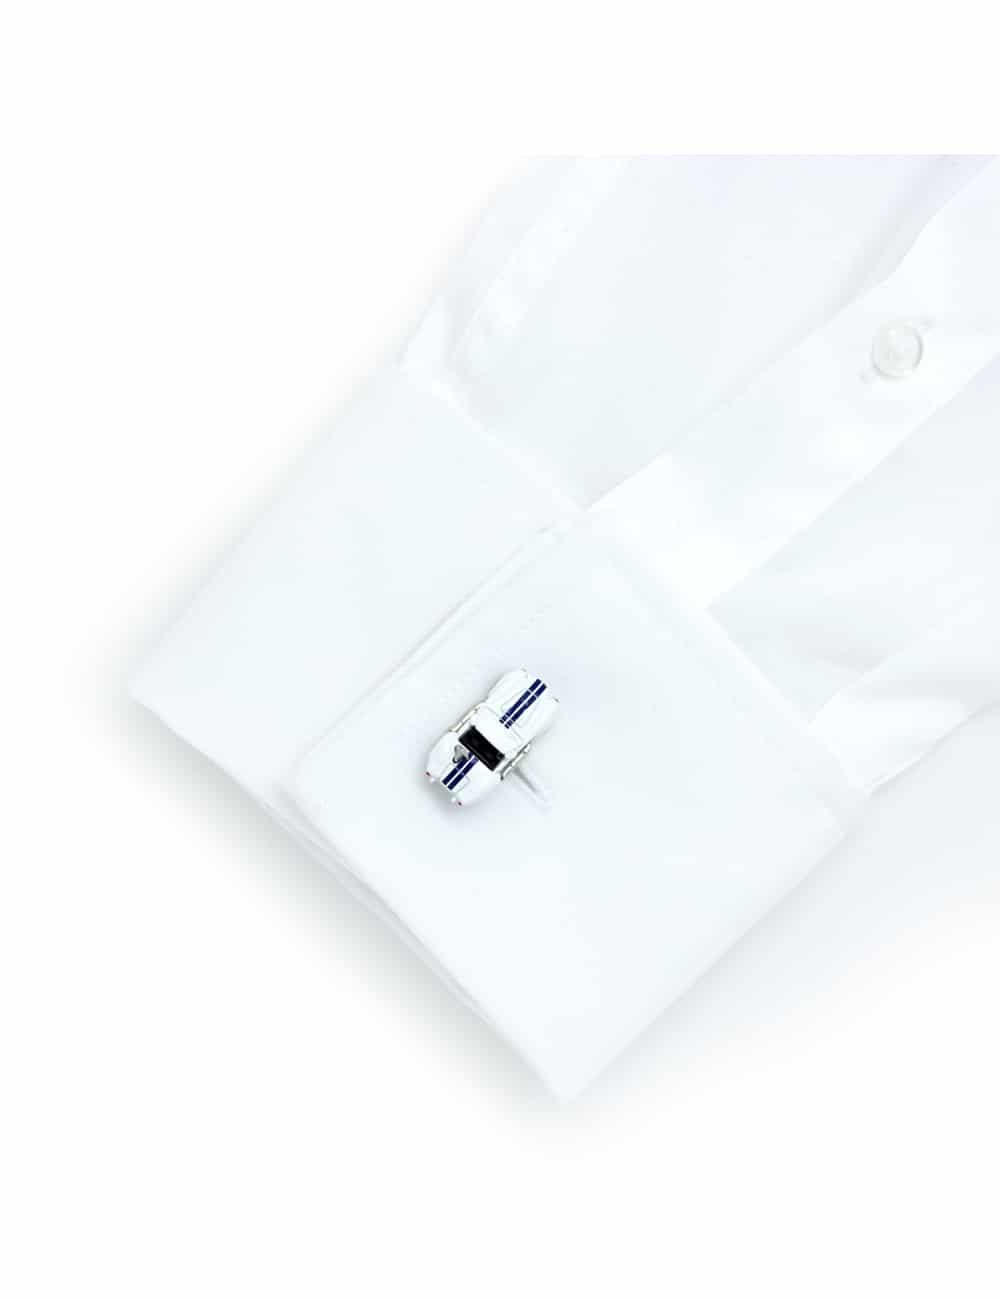 White unhooded vintage car cufflink with navy stripe accents 0102-023B